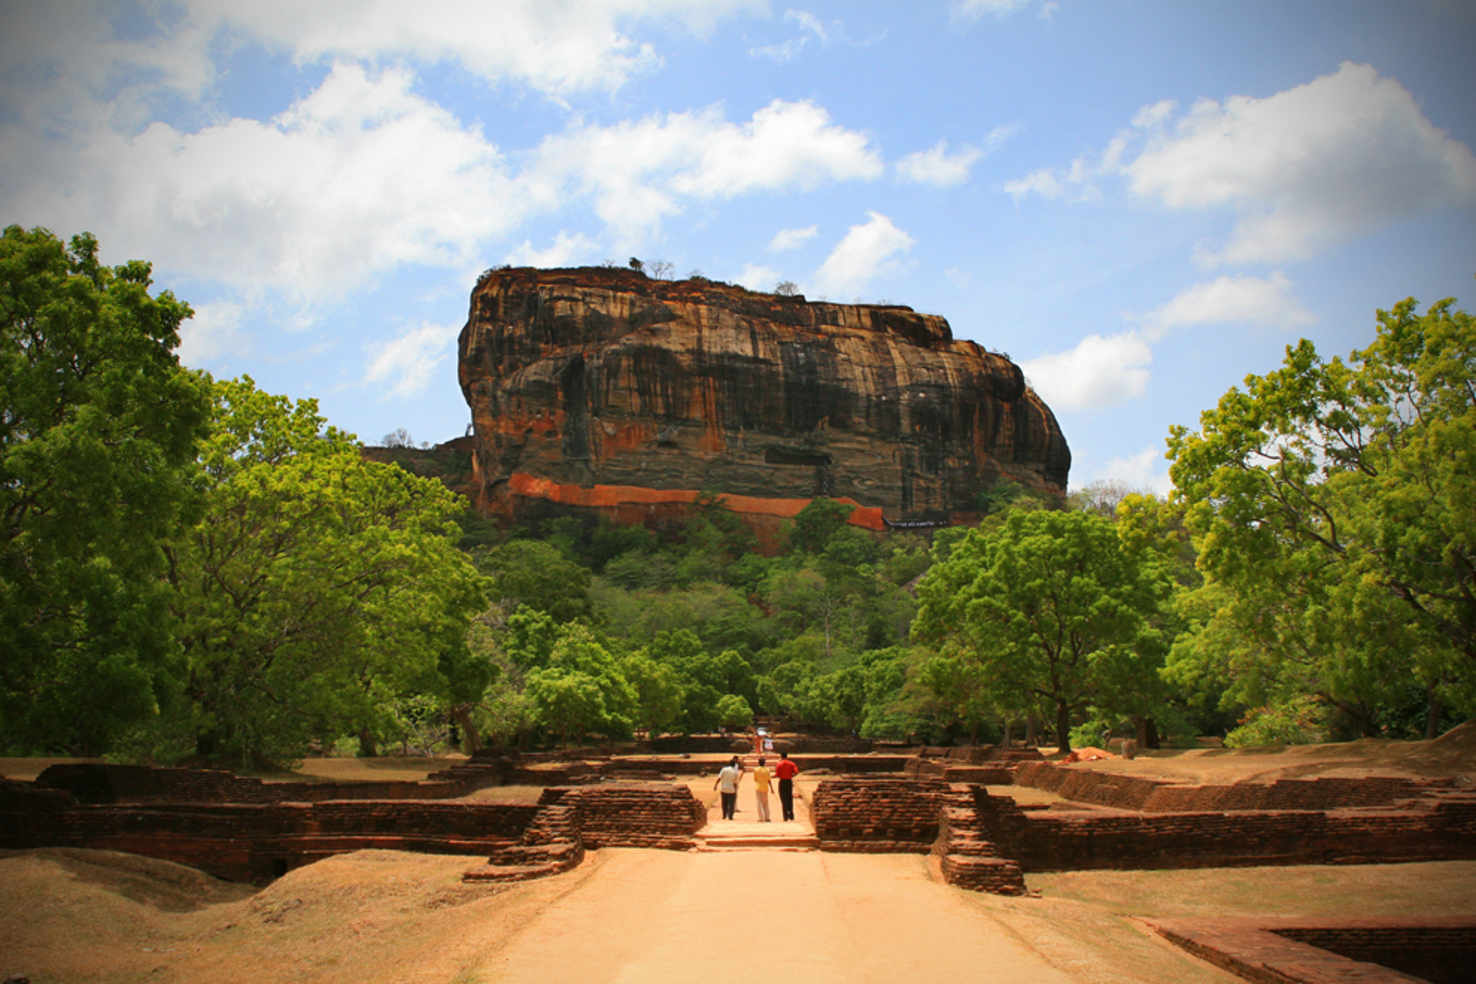 Large sigiriya rock and surrounding gardens